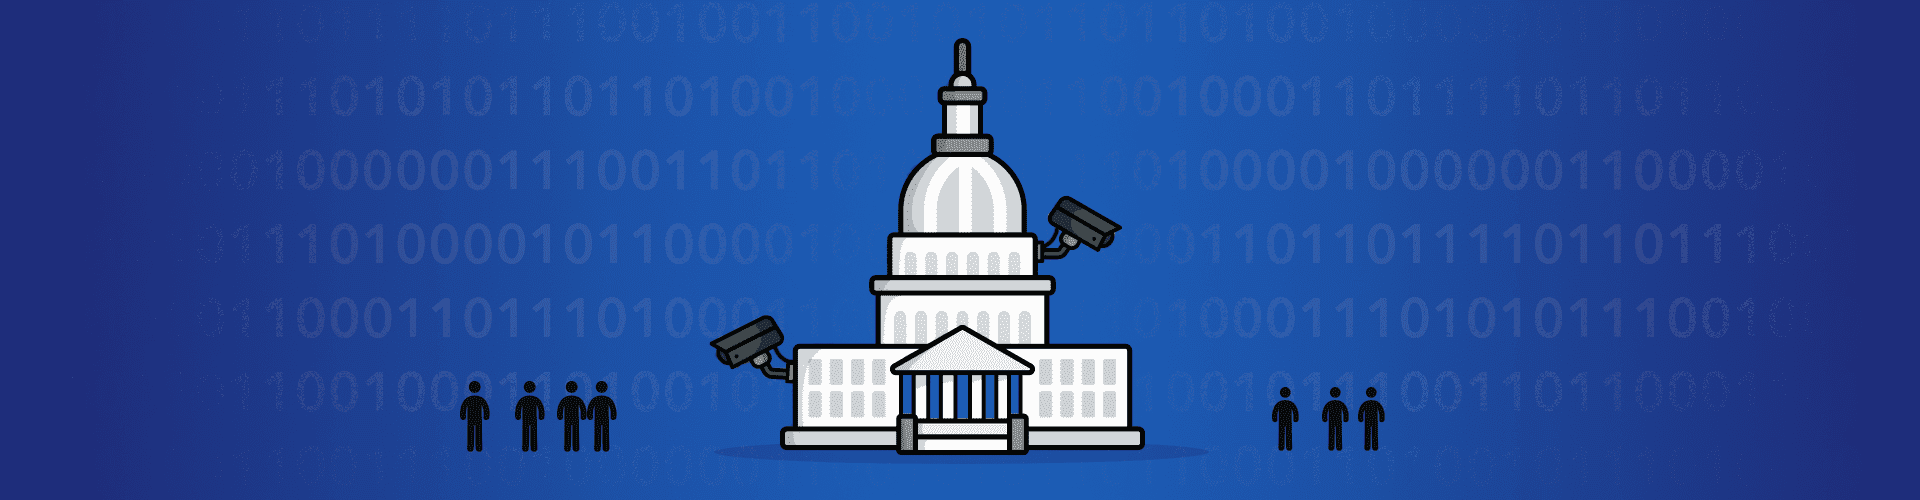 government data security